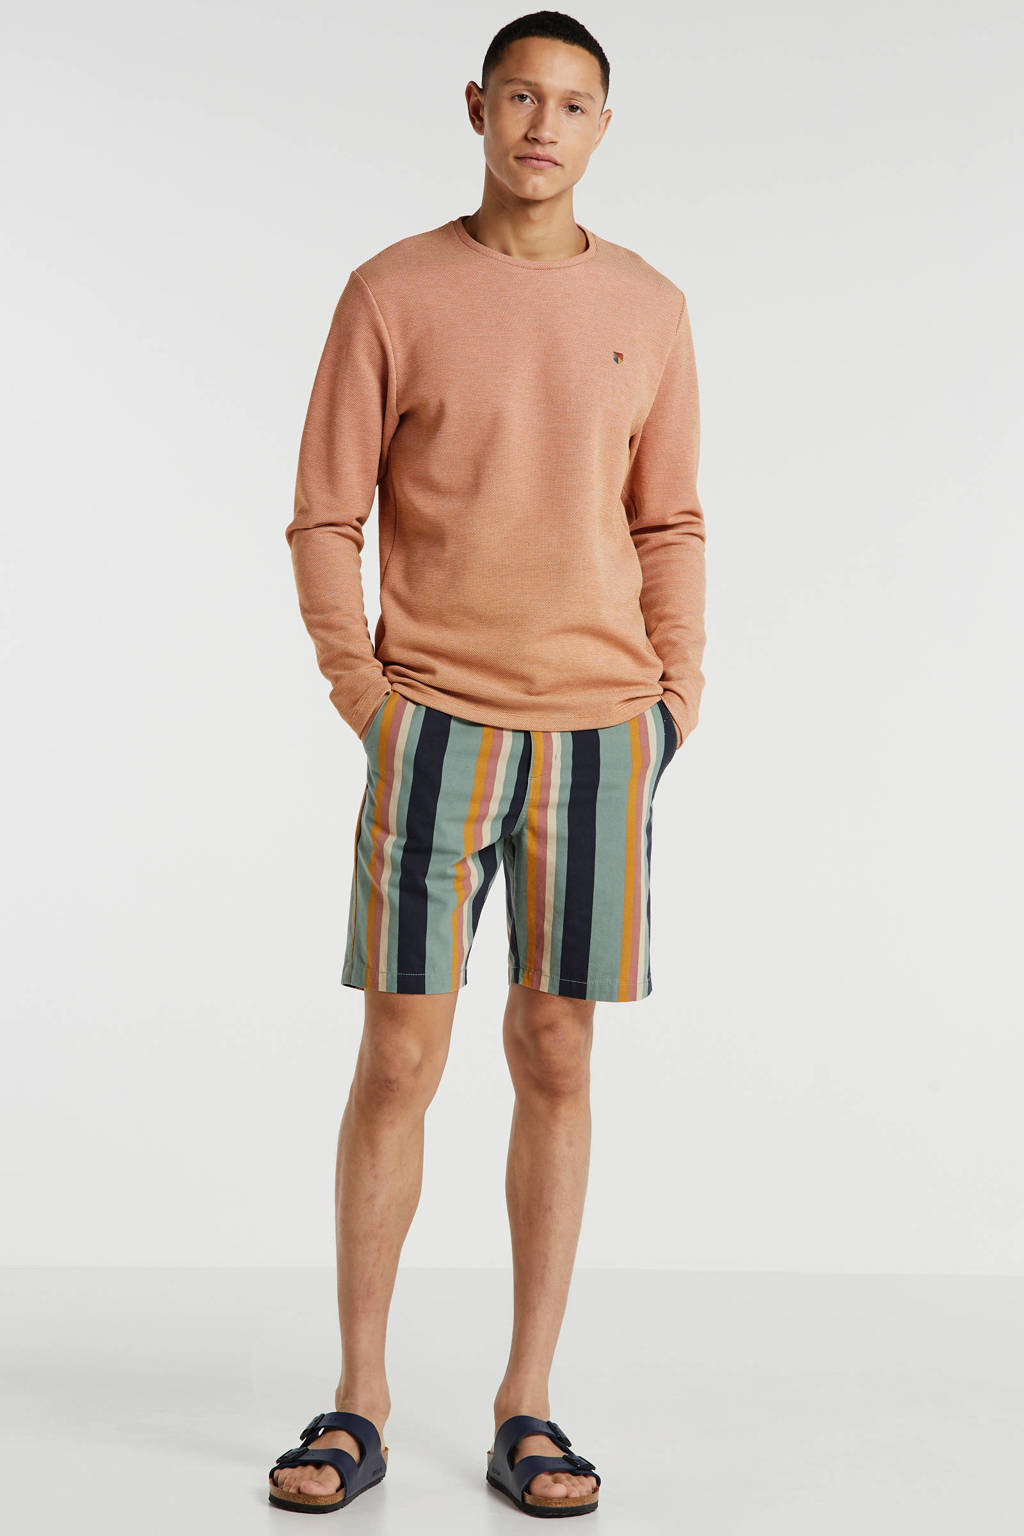 JACK & JONES PREMIUM sweater hawaiian sunset, Hawaiian Sunset